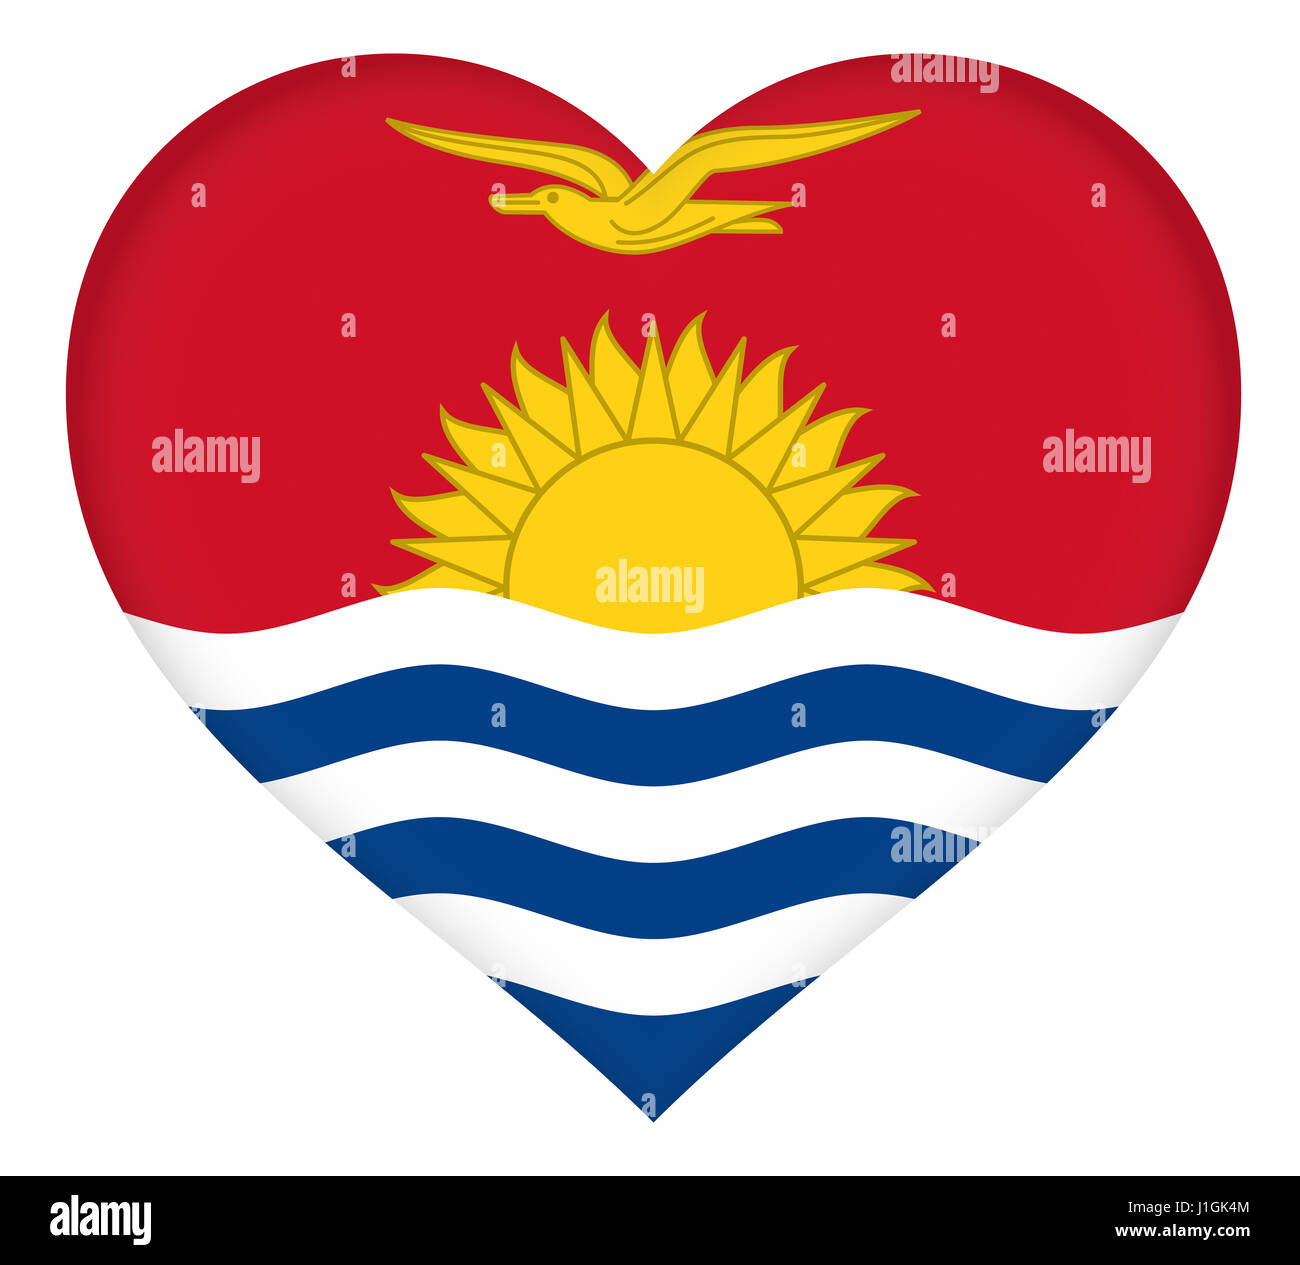 Illustration of the flag of Kiribati shaped like a heart - Stock Image